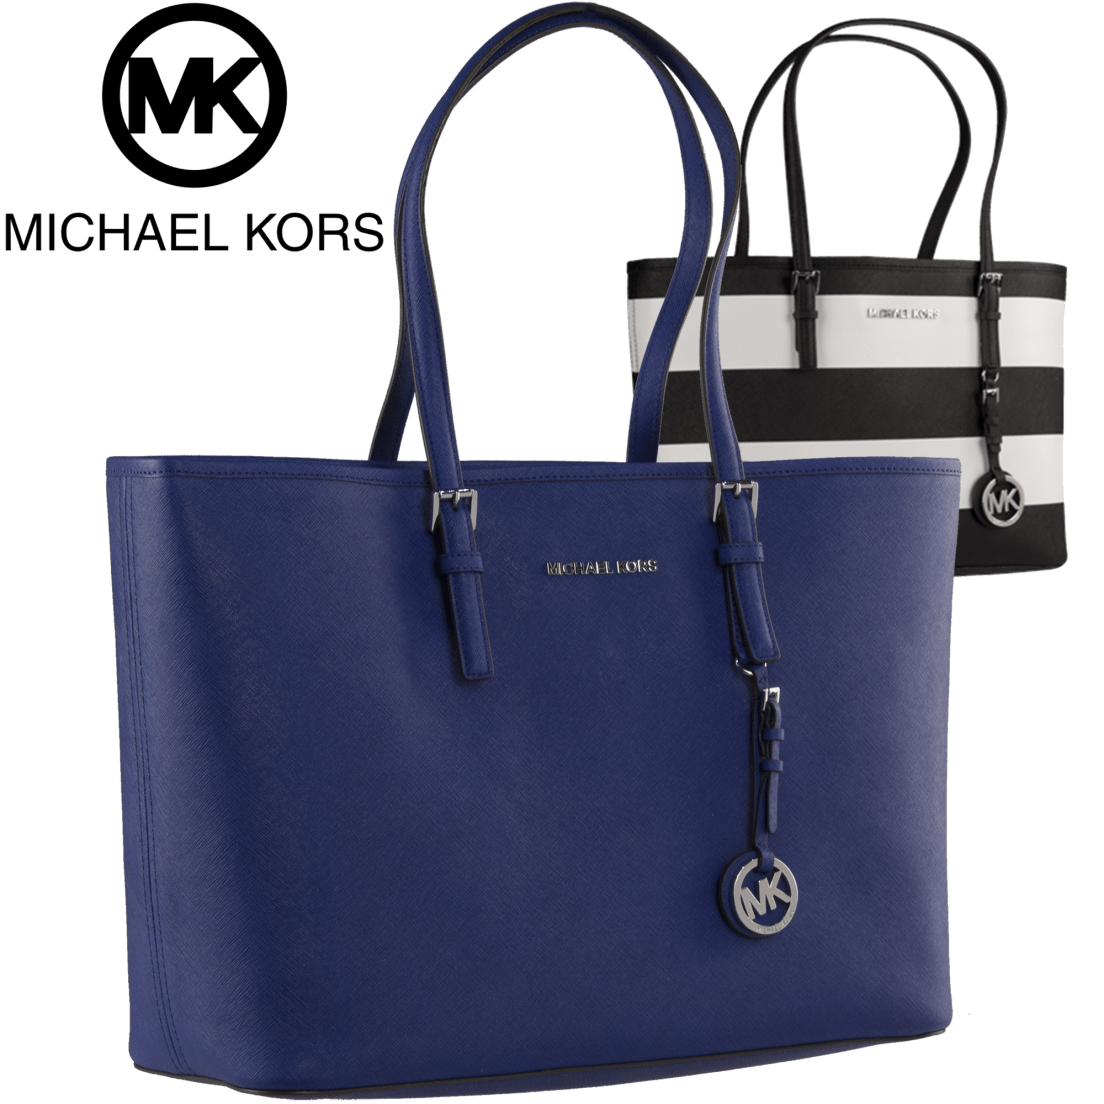 4c0197f8dfc2 Michael Kors Jet Set Travel Medium Saffiano Leather Top-Zip Tote